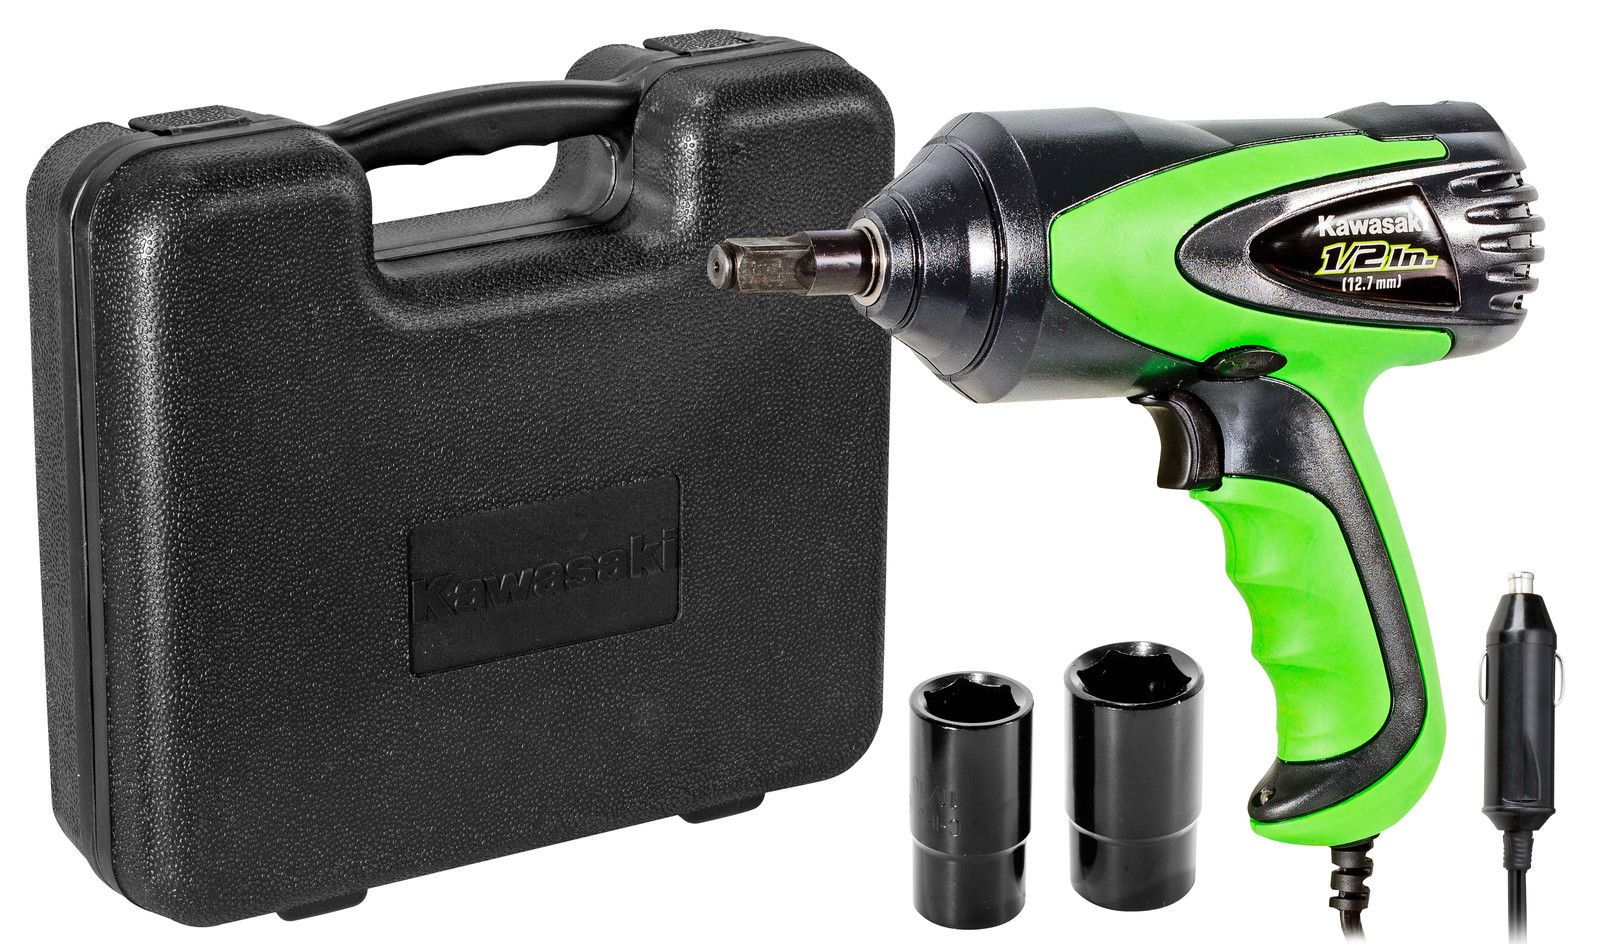 42 Off Kawasaki 12v Dc Impact Wrench Set Roadside Tire Changes 841337